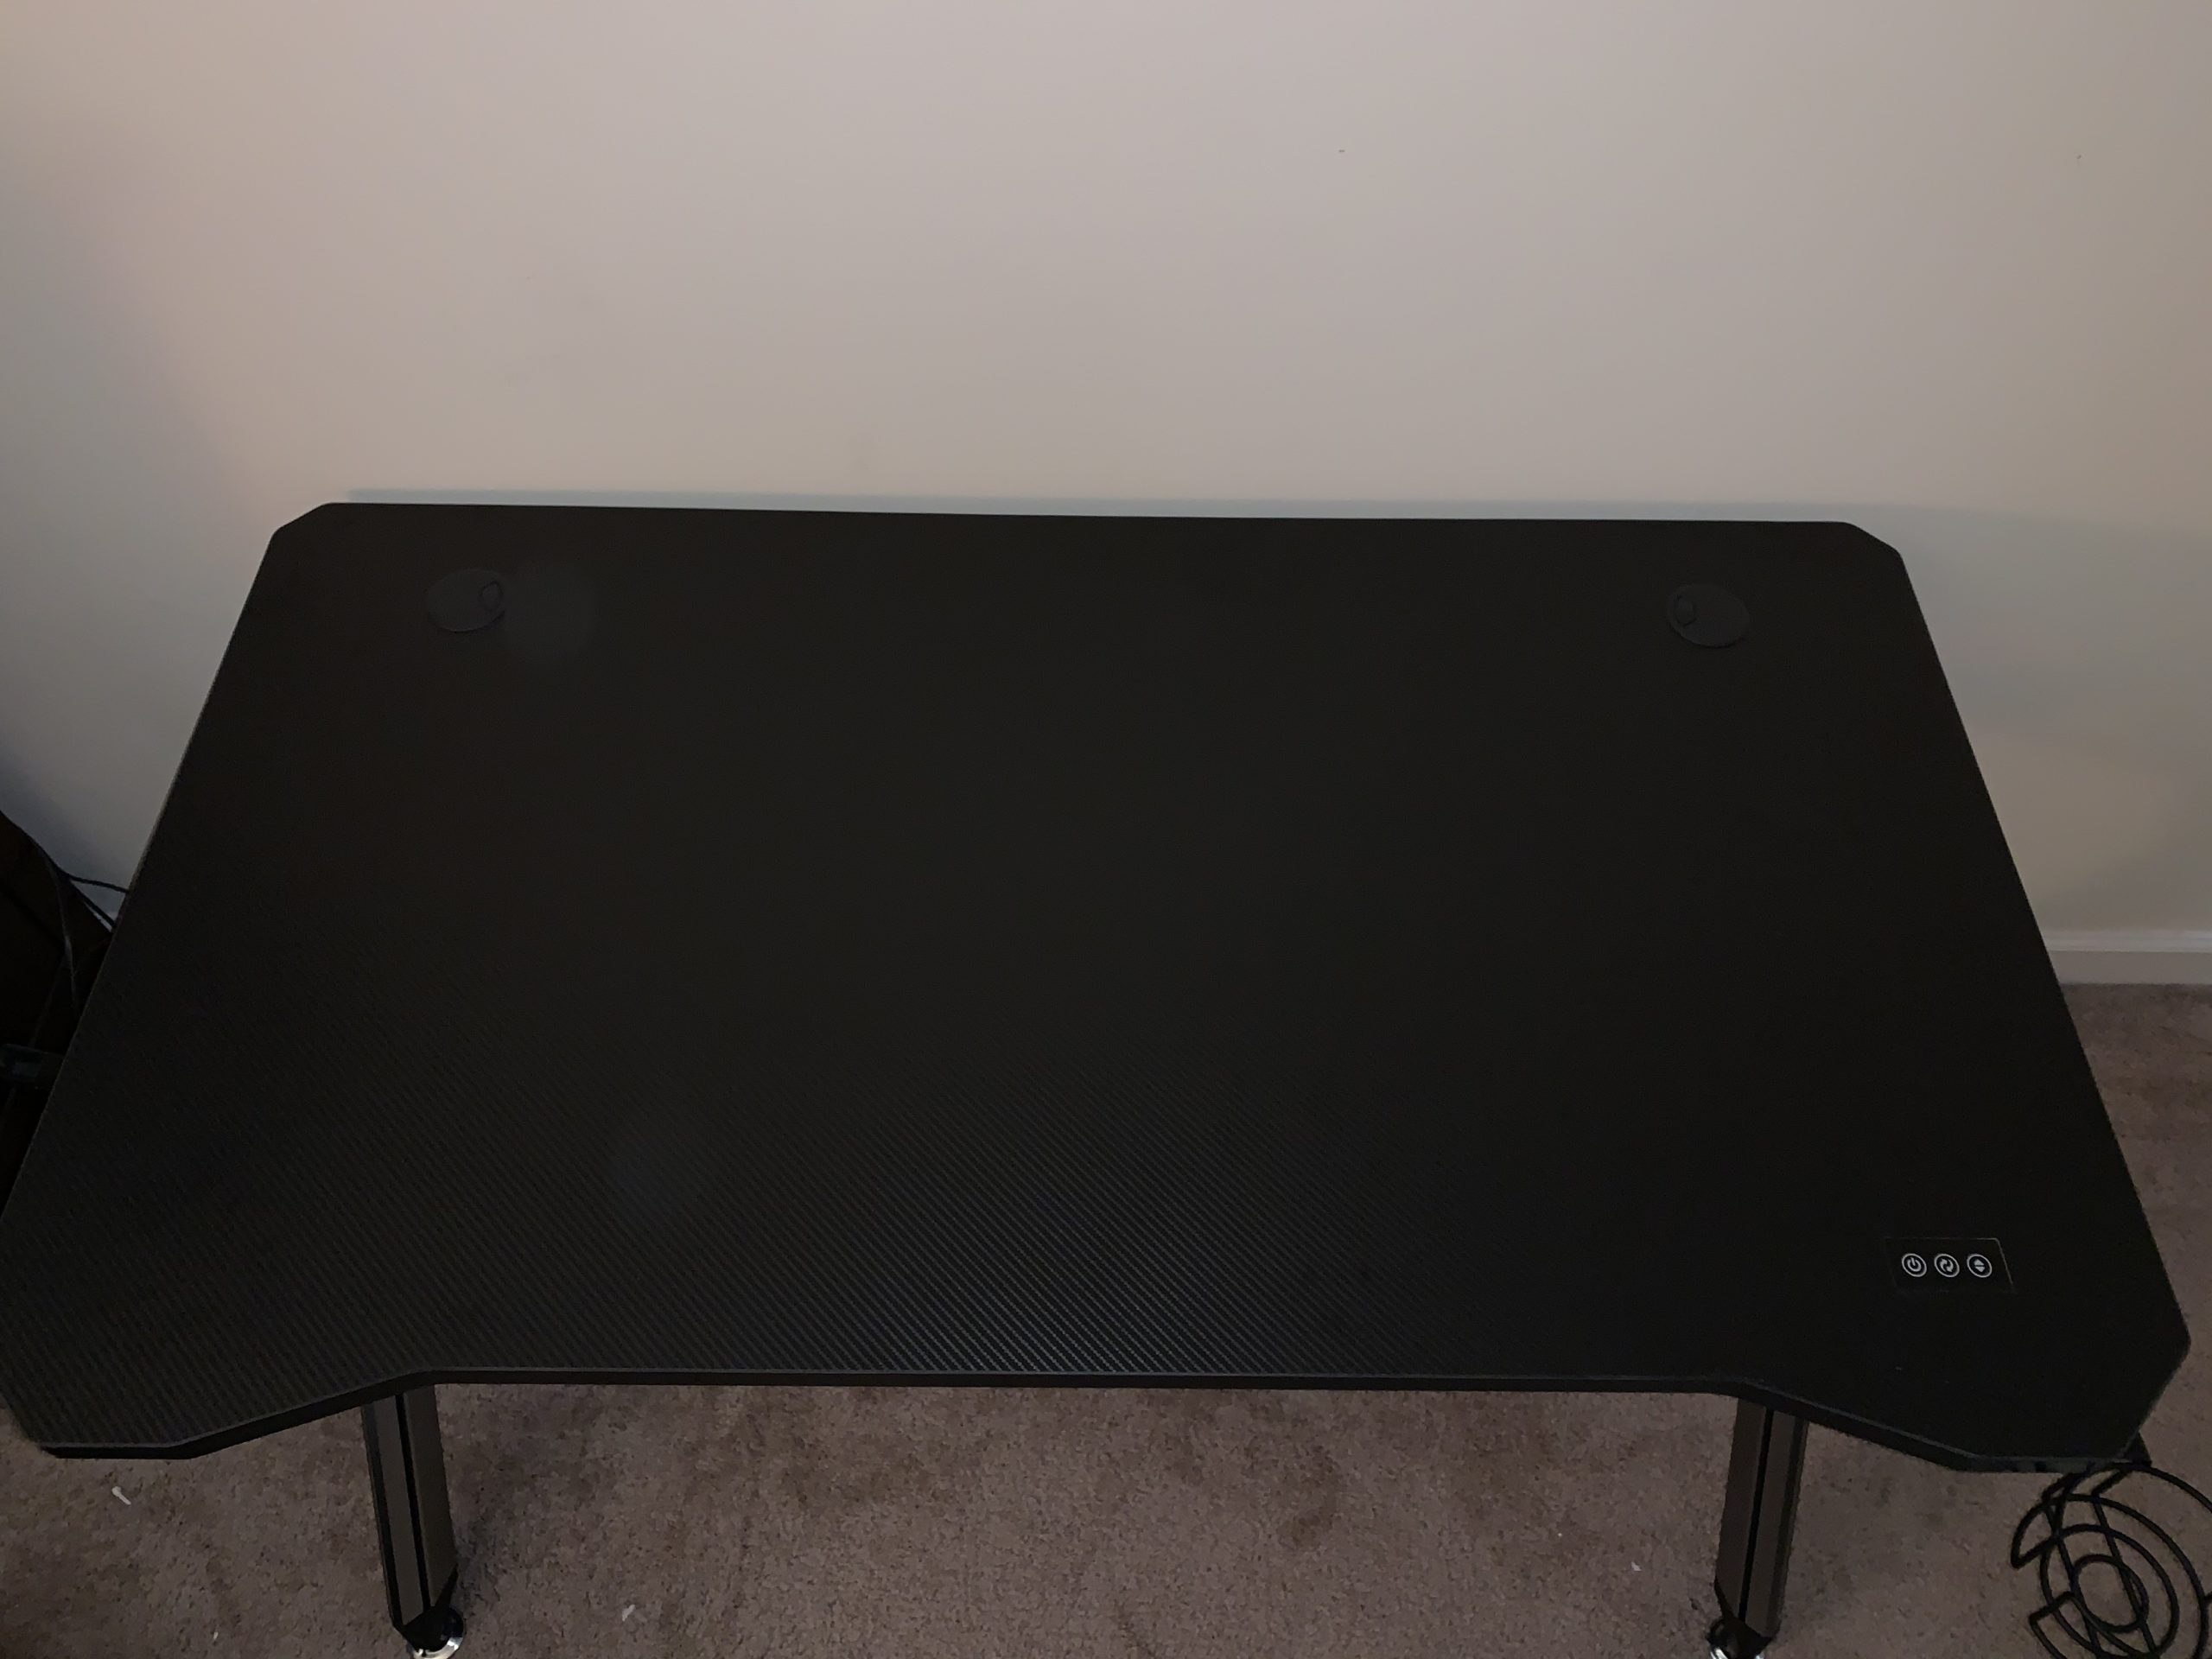 E-WIN 2.0 Edition RGB Gaming Desk Review, 3 GamersRD